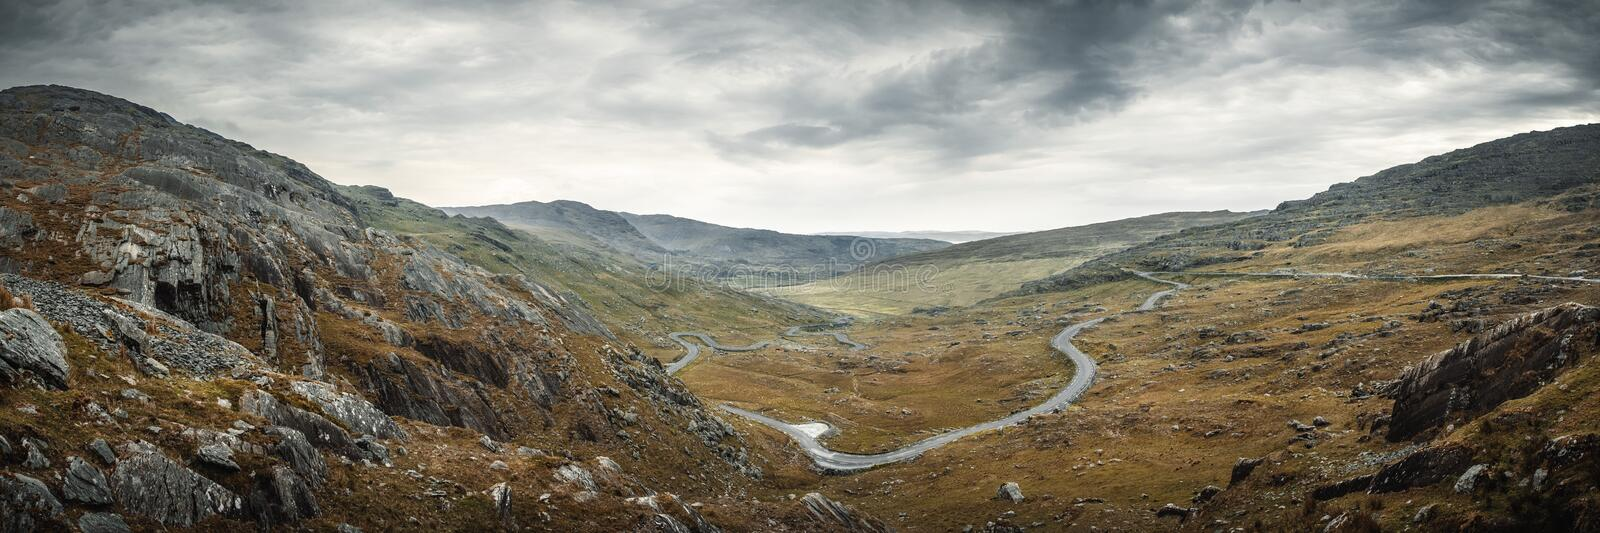 Panoramic view of Healy Pass in County Cork in Ireland stock photos